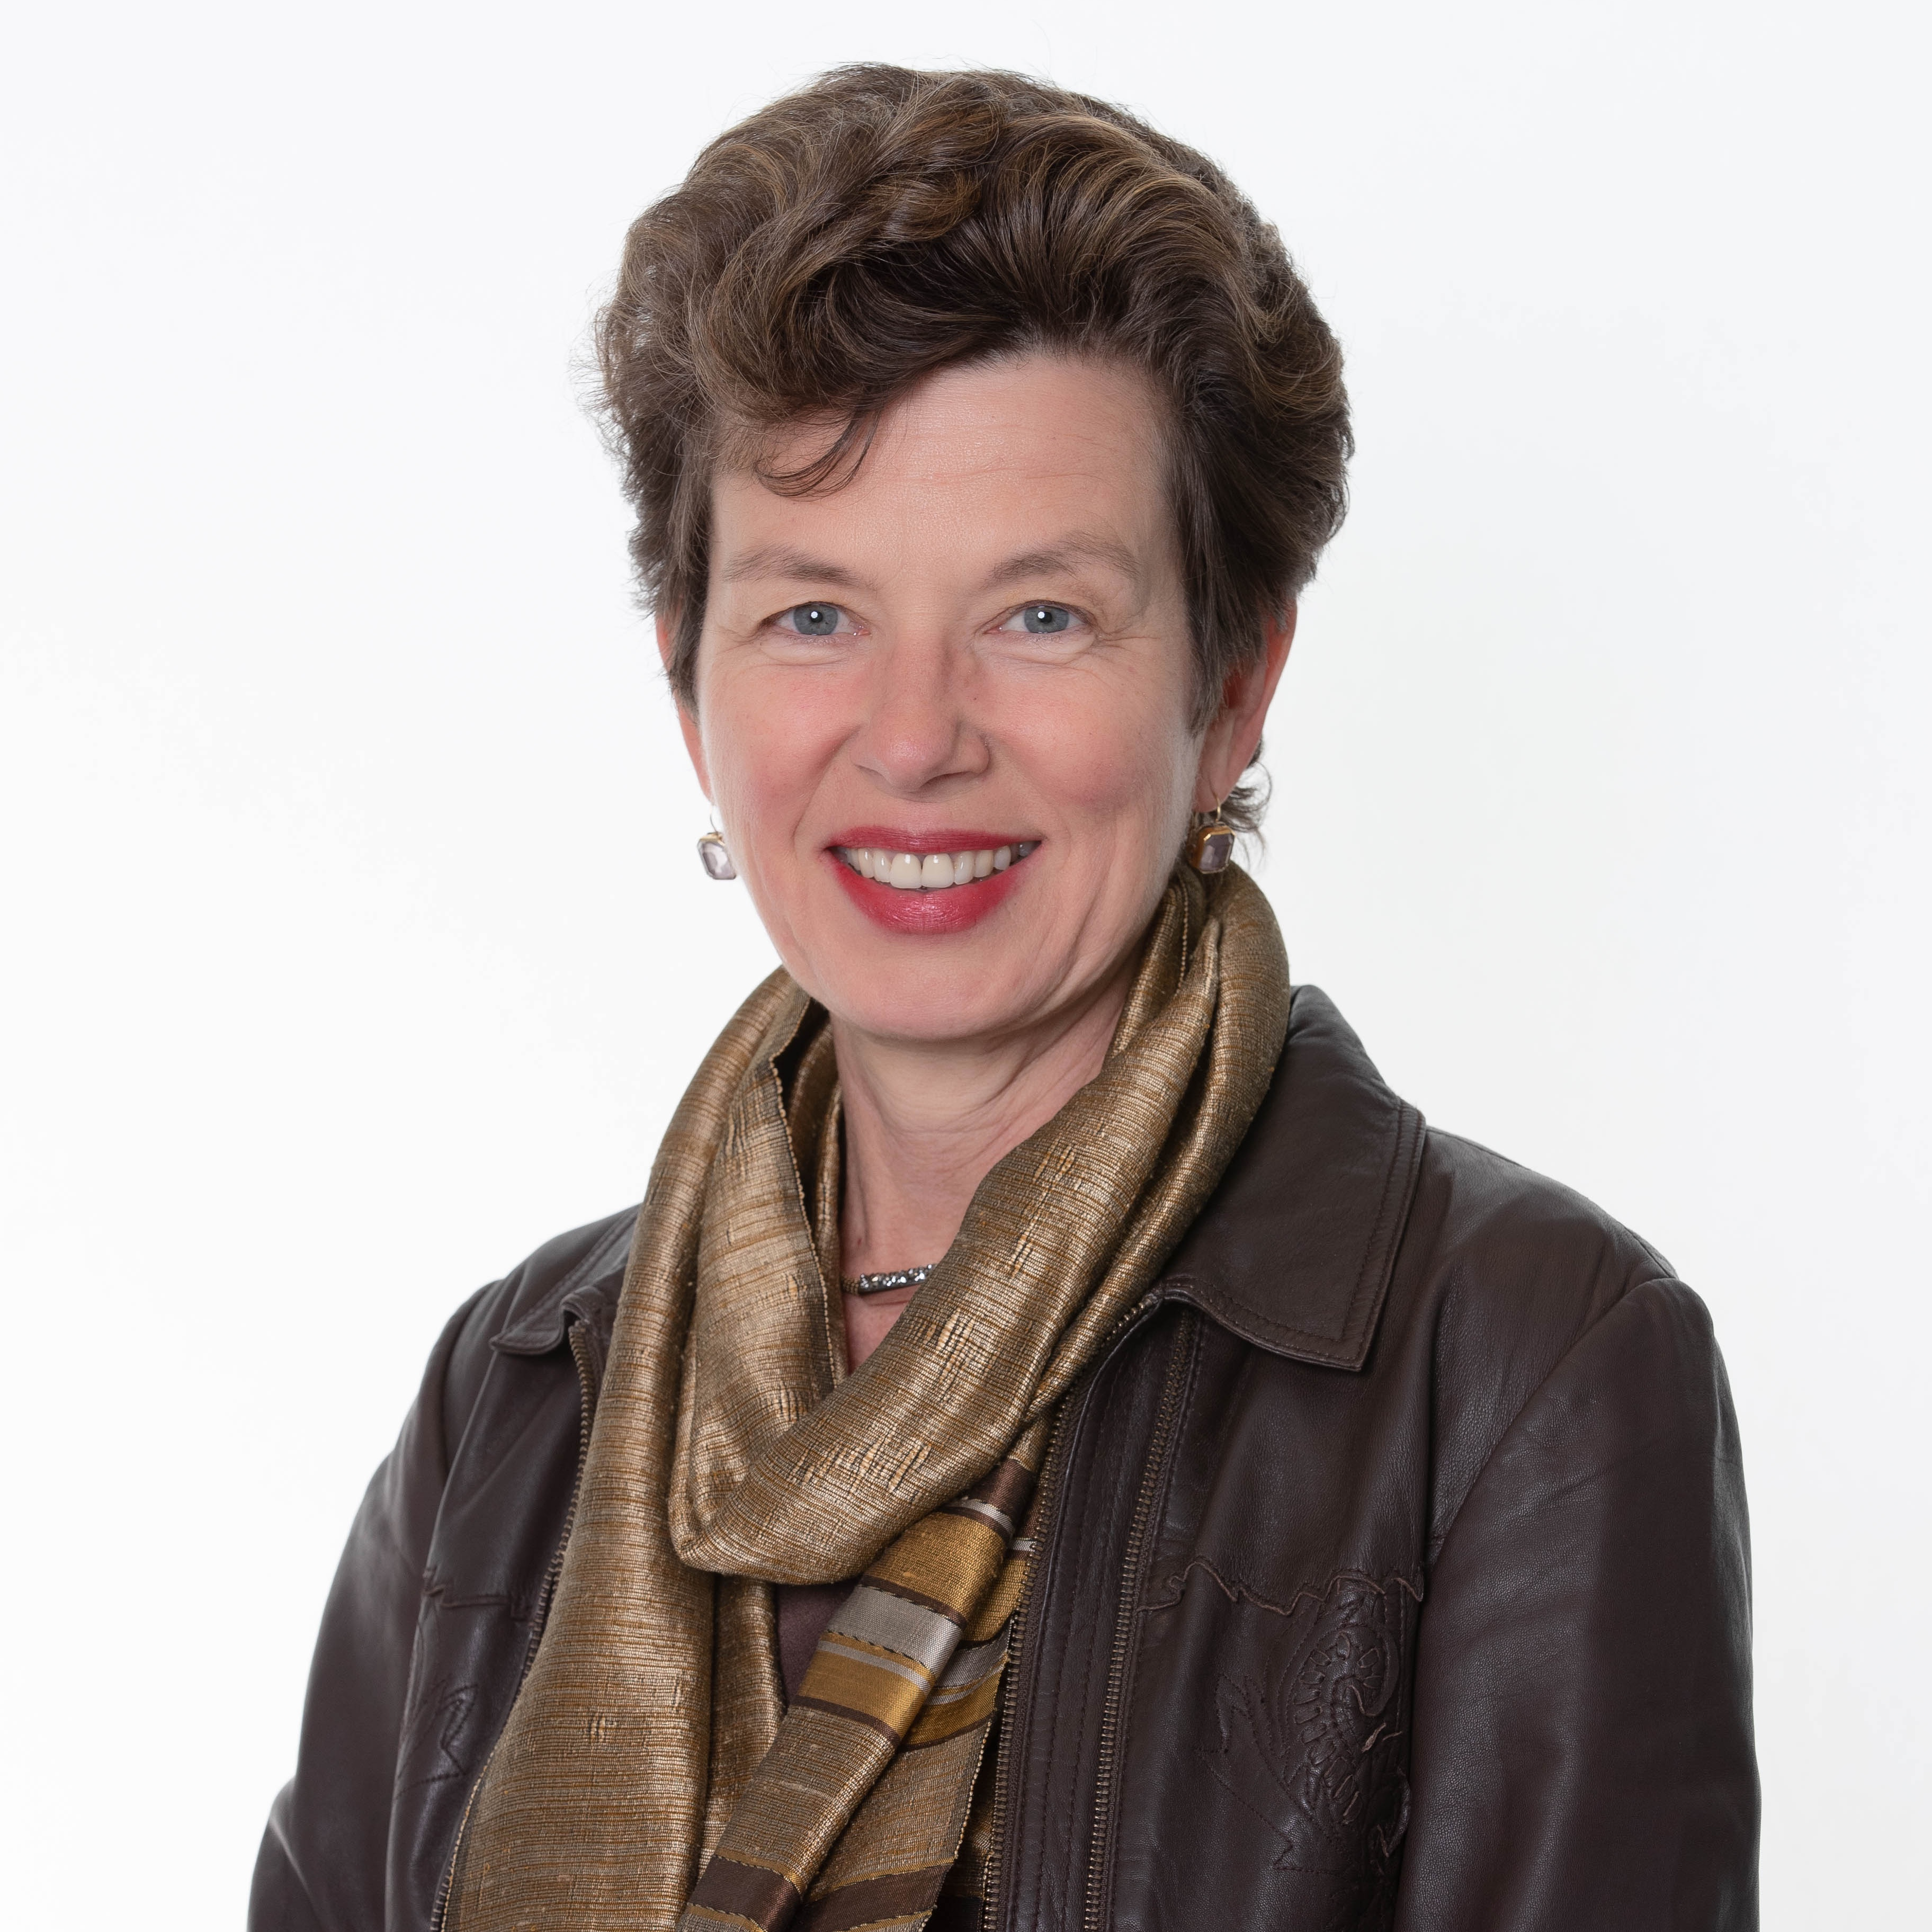 Episode 54: A replay episode with Deborah Cook - research success, end of life care, & clinical leadership pearls